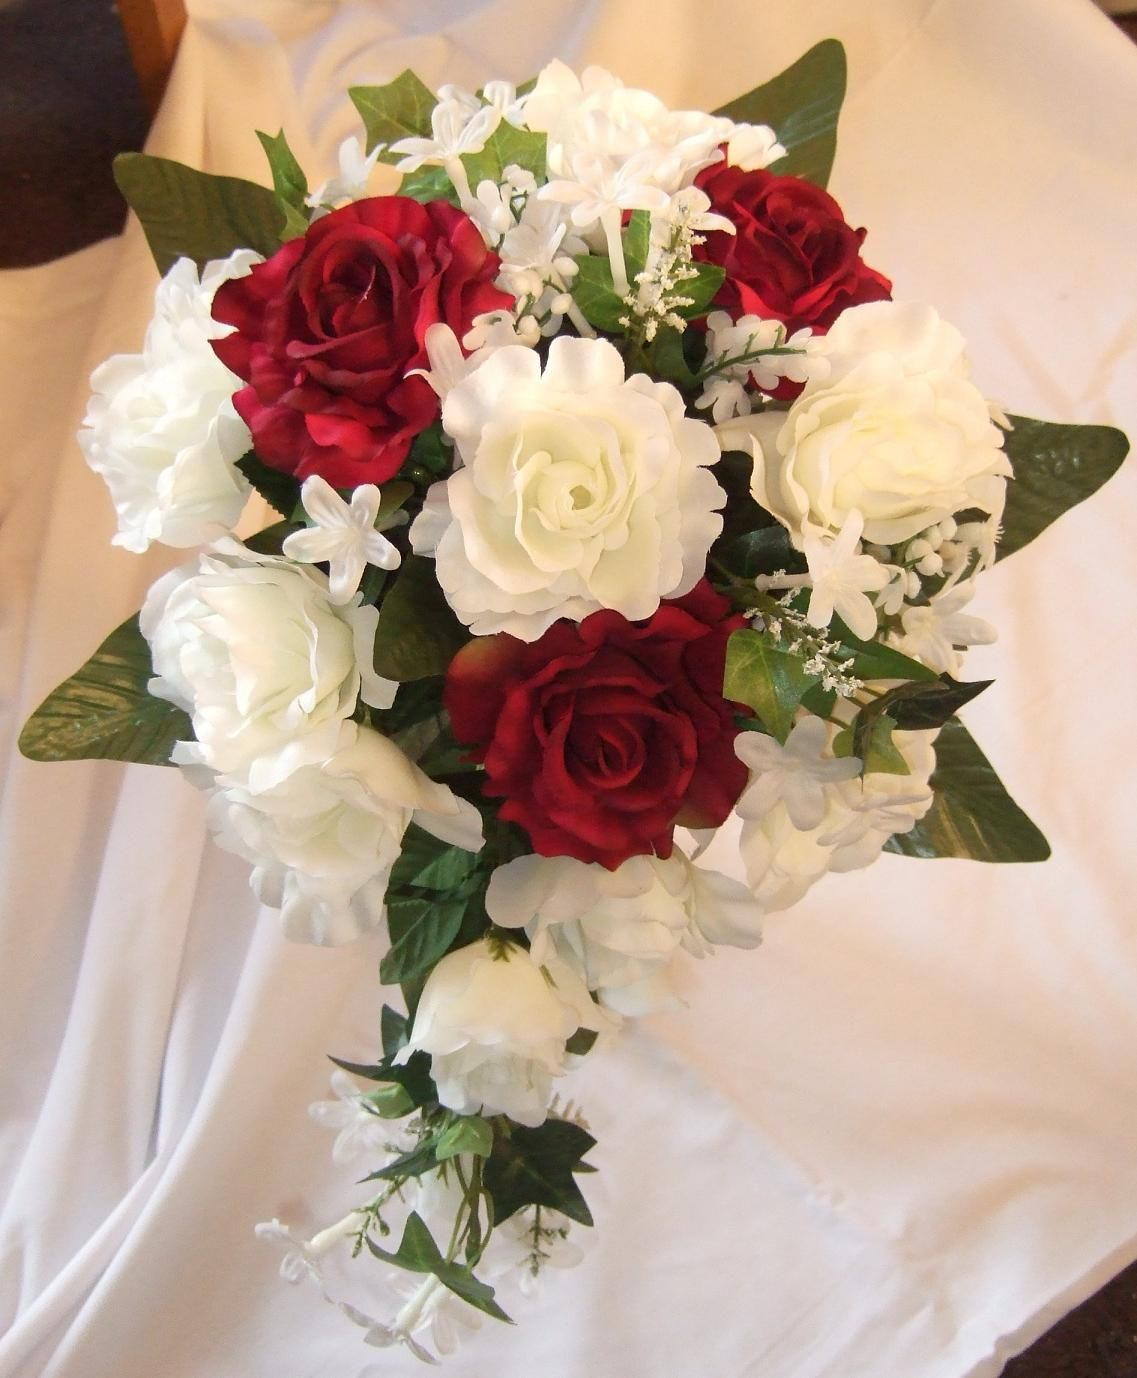 Wedding flower bouquets flower ideas burgundy and white roses wedding flower bouquets flower ideas burgundy and white roses burgundy silk wedding flower izmirmasajfo Images